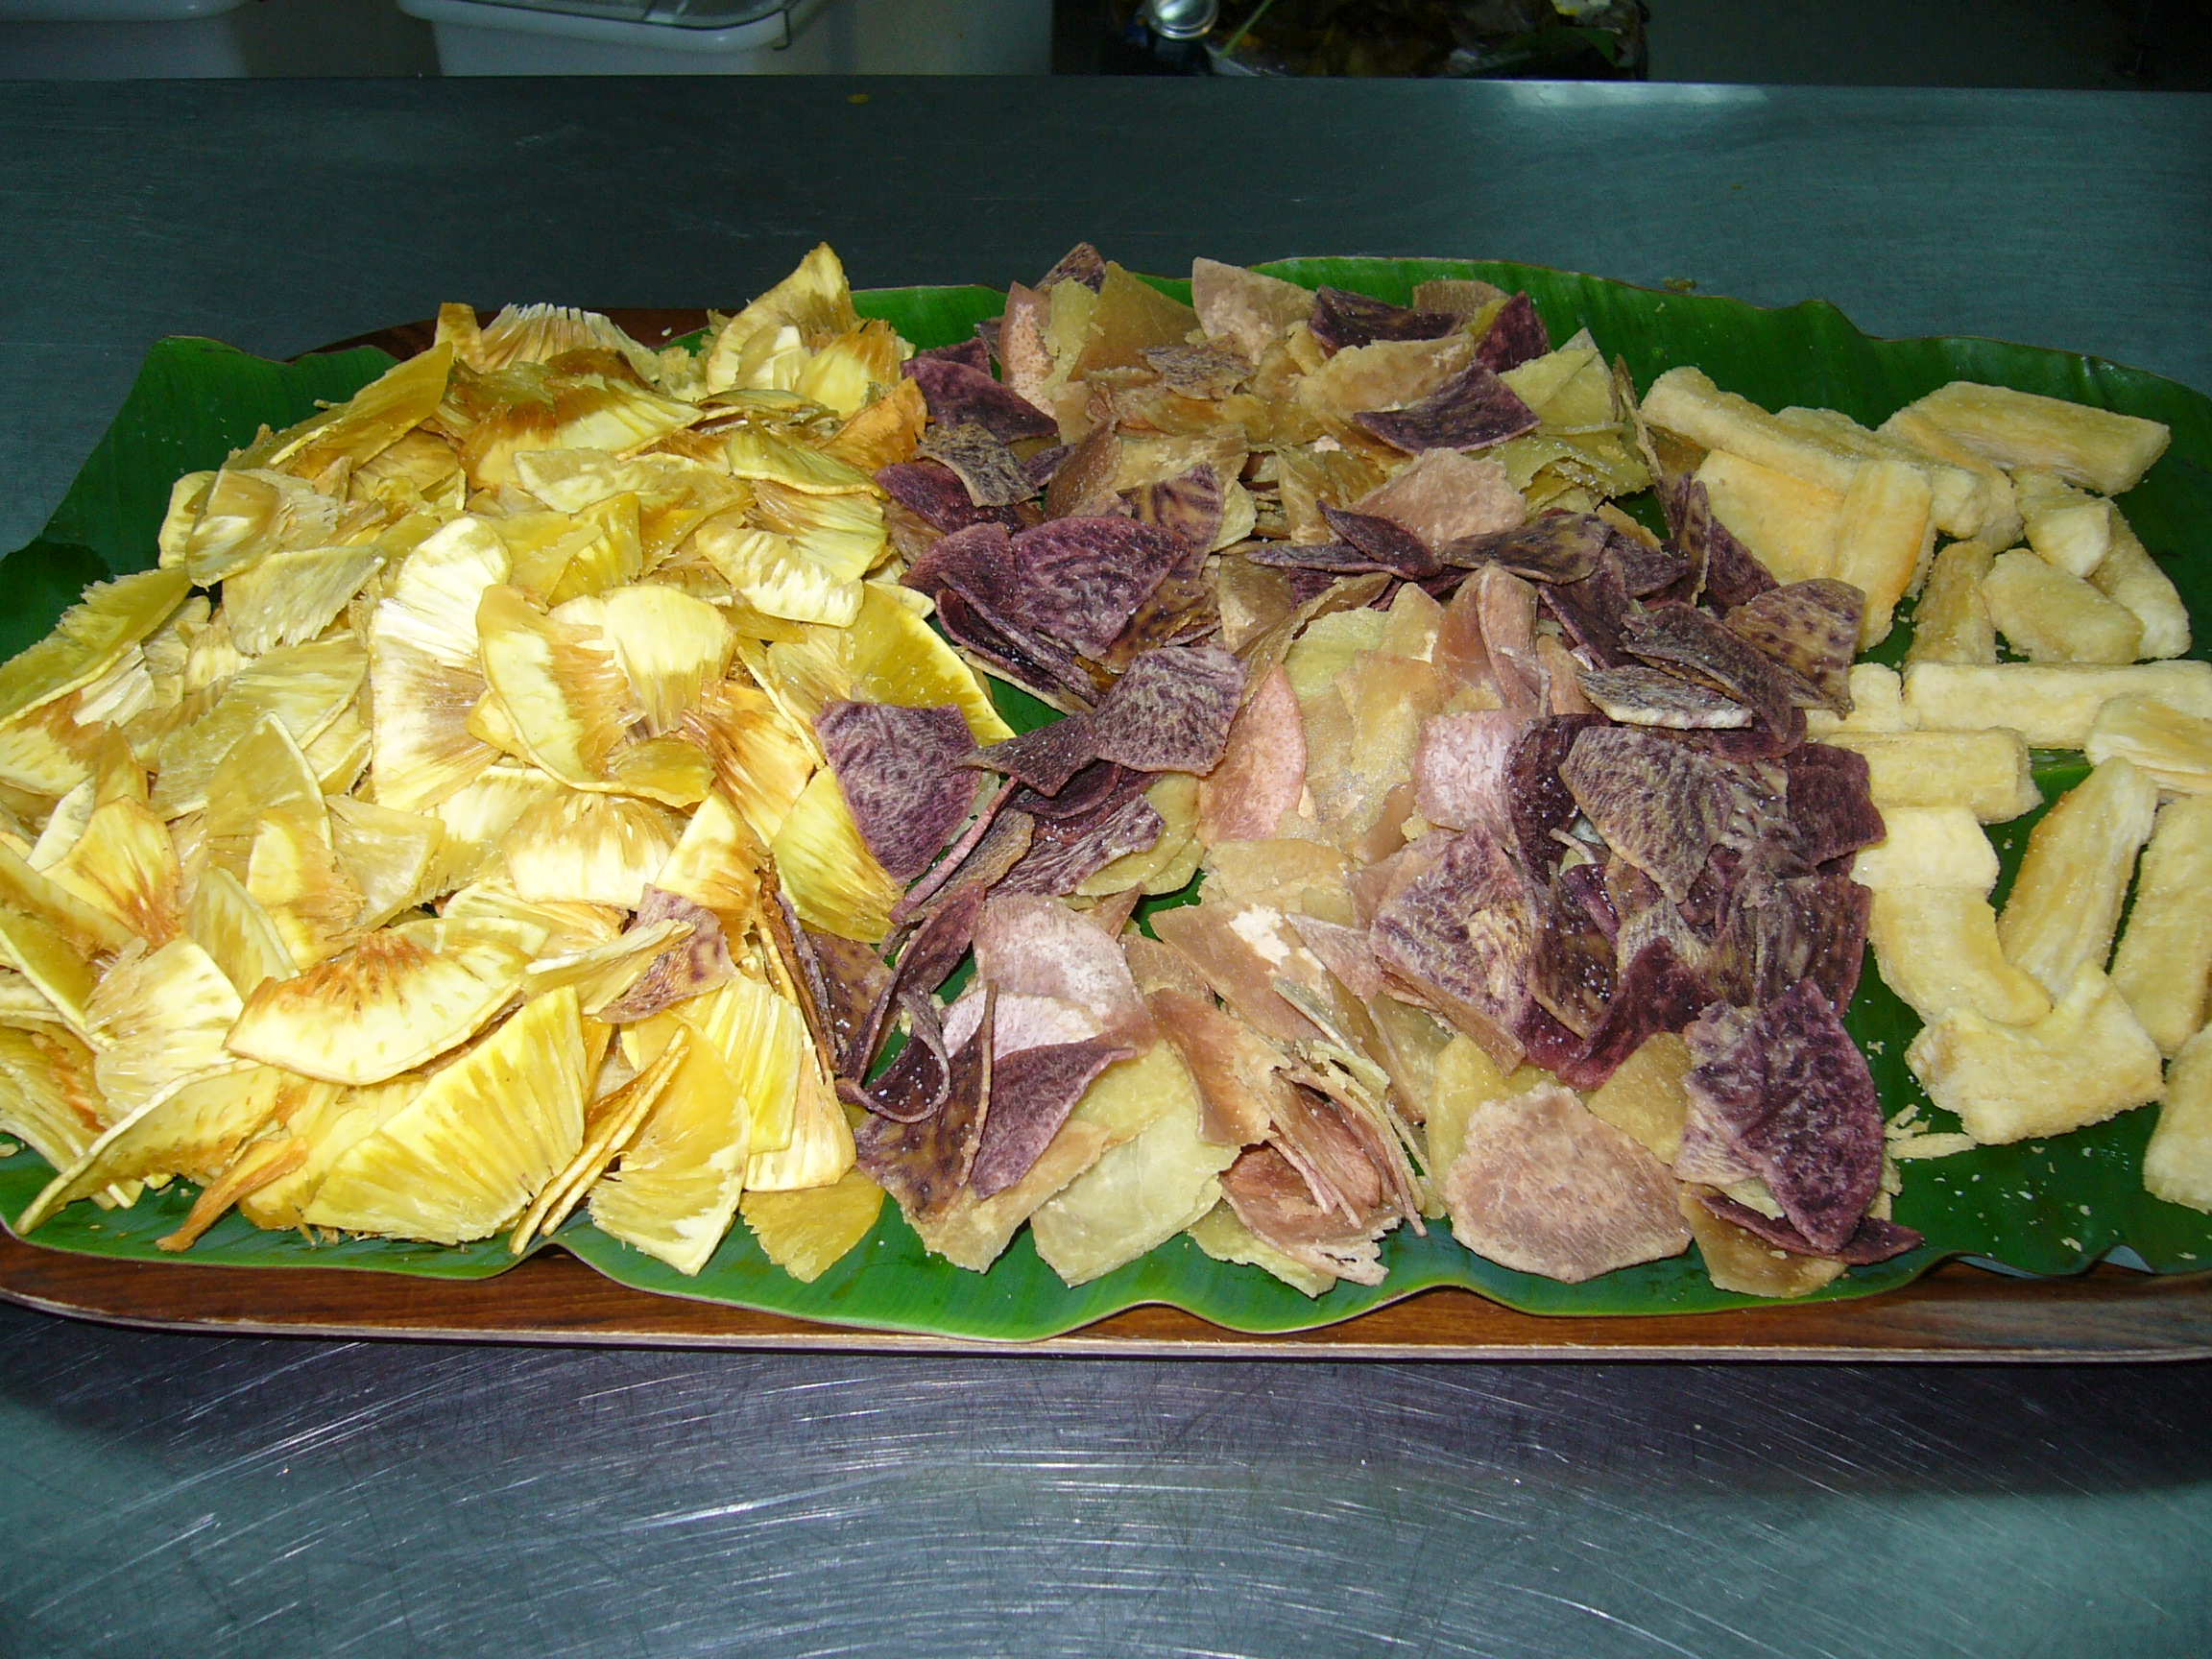 SELECTION OF ISLAND CHIPS